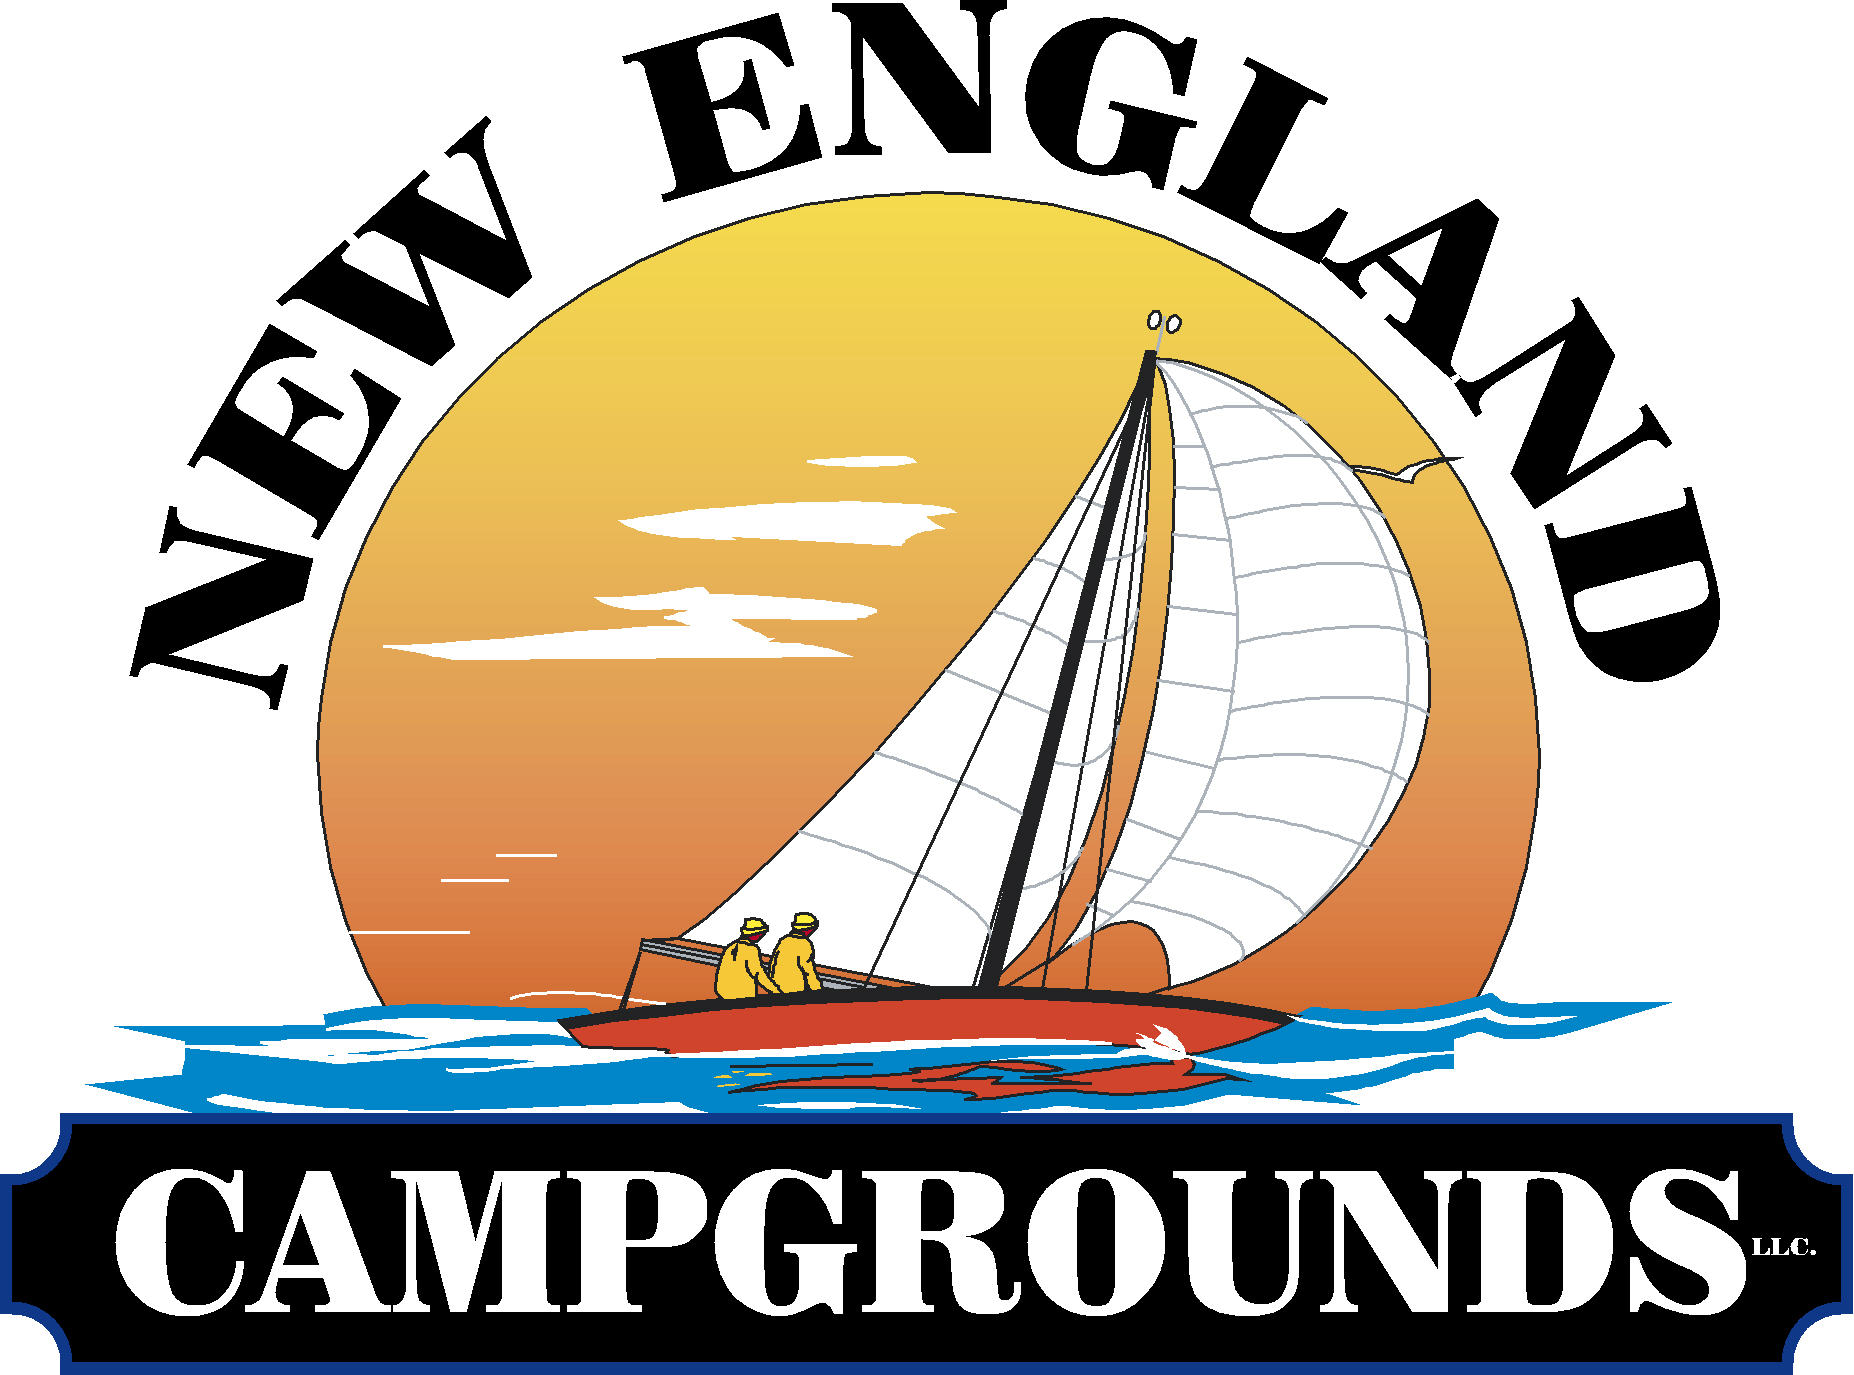 ne+campground+pushaw+logo.JPG